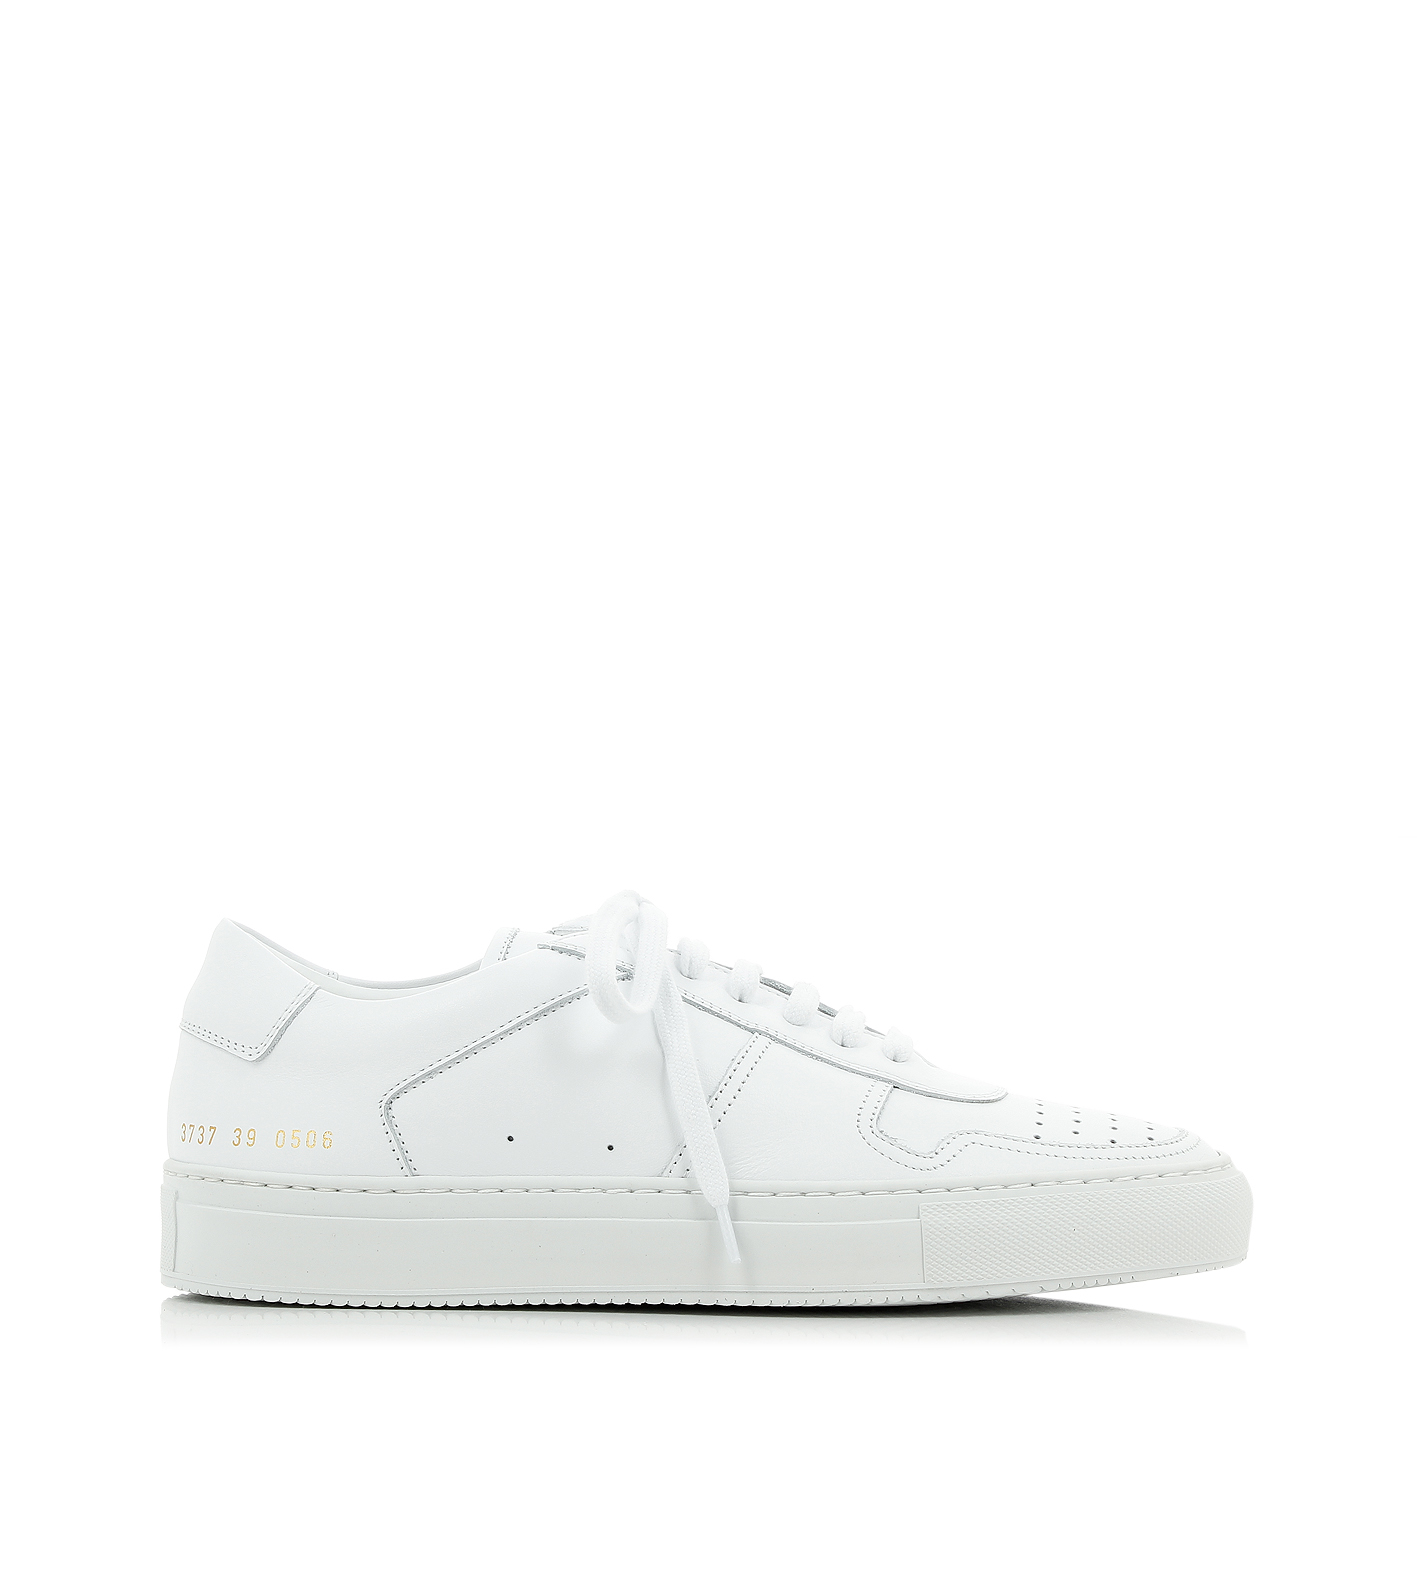 common projects bball low white sneakers in white lyst. Black Bedroom Furniture Sets. Home Design Ideas